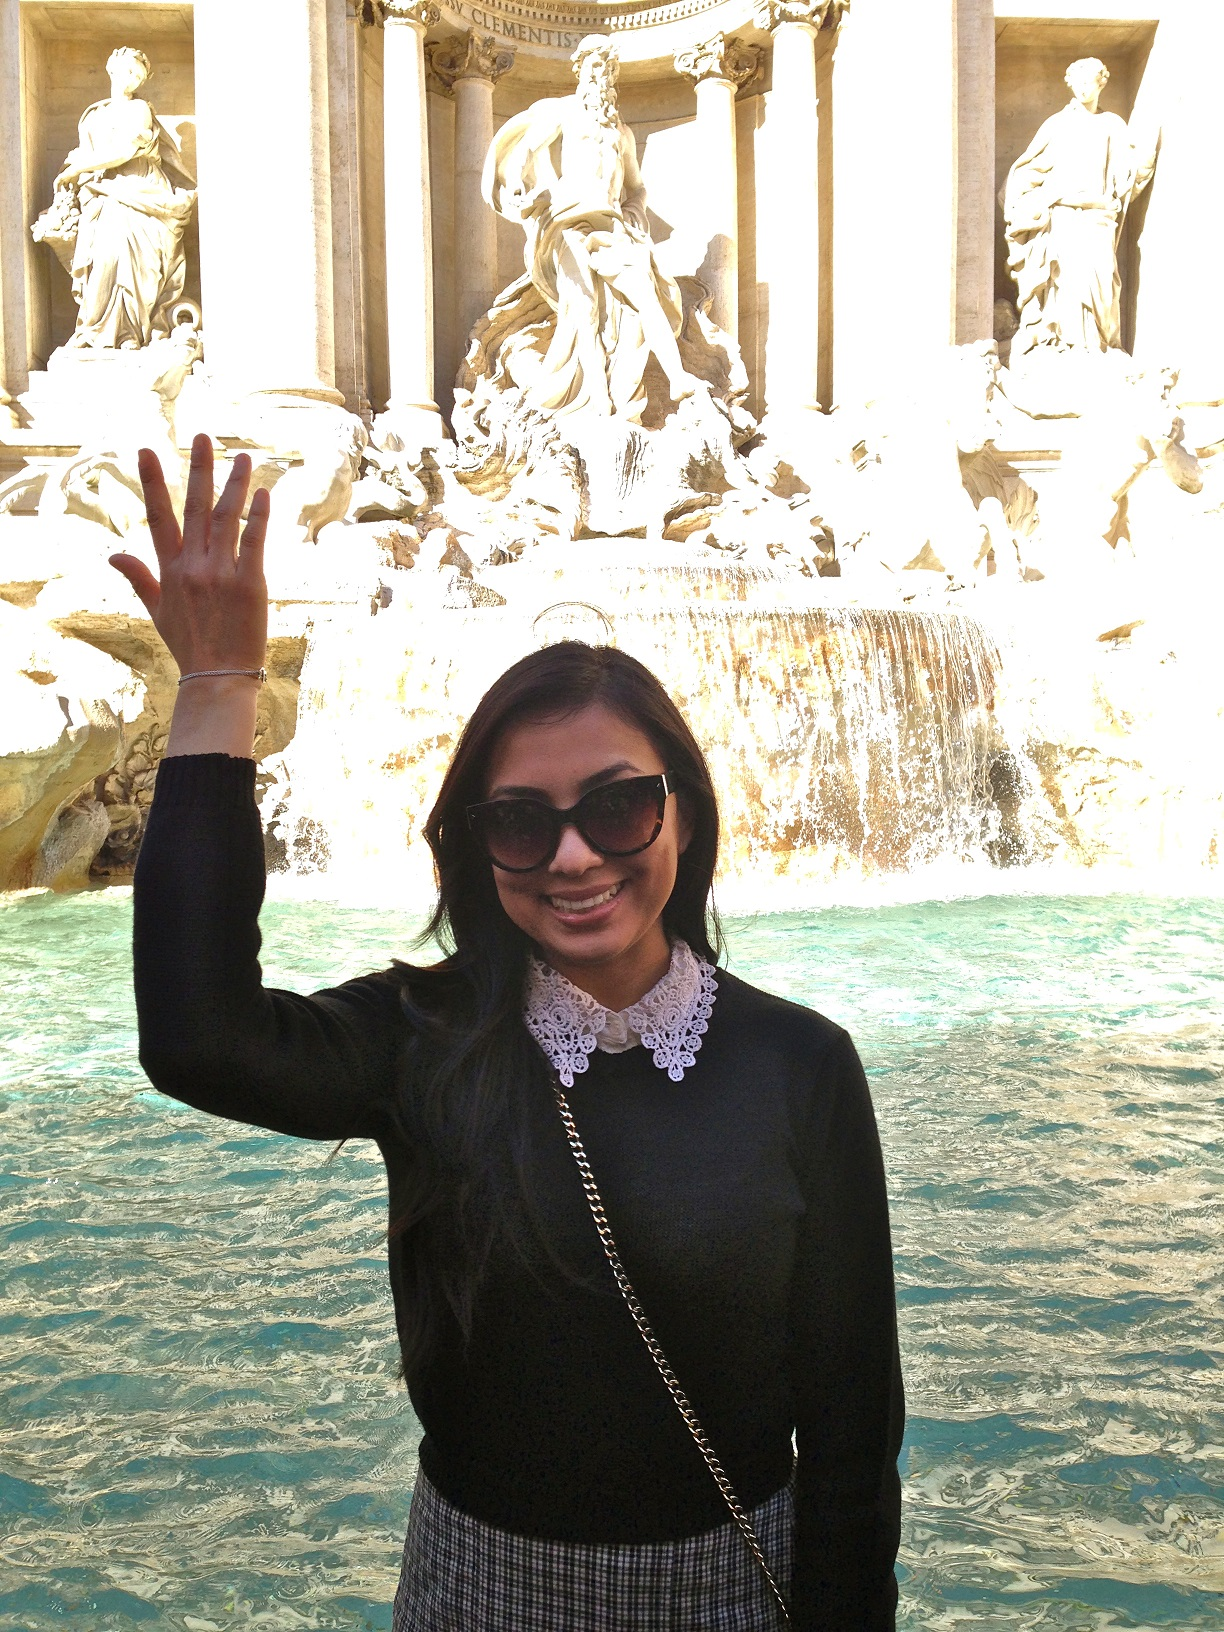 Study Abroad in Italy, international universities in rome, traveling rome as a student, iconic places to visit in rome, iconic places close to john cabot campus in rome, trastevere, trevi fountain